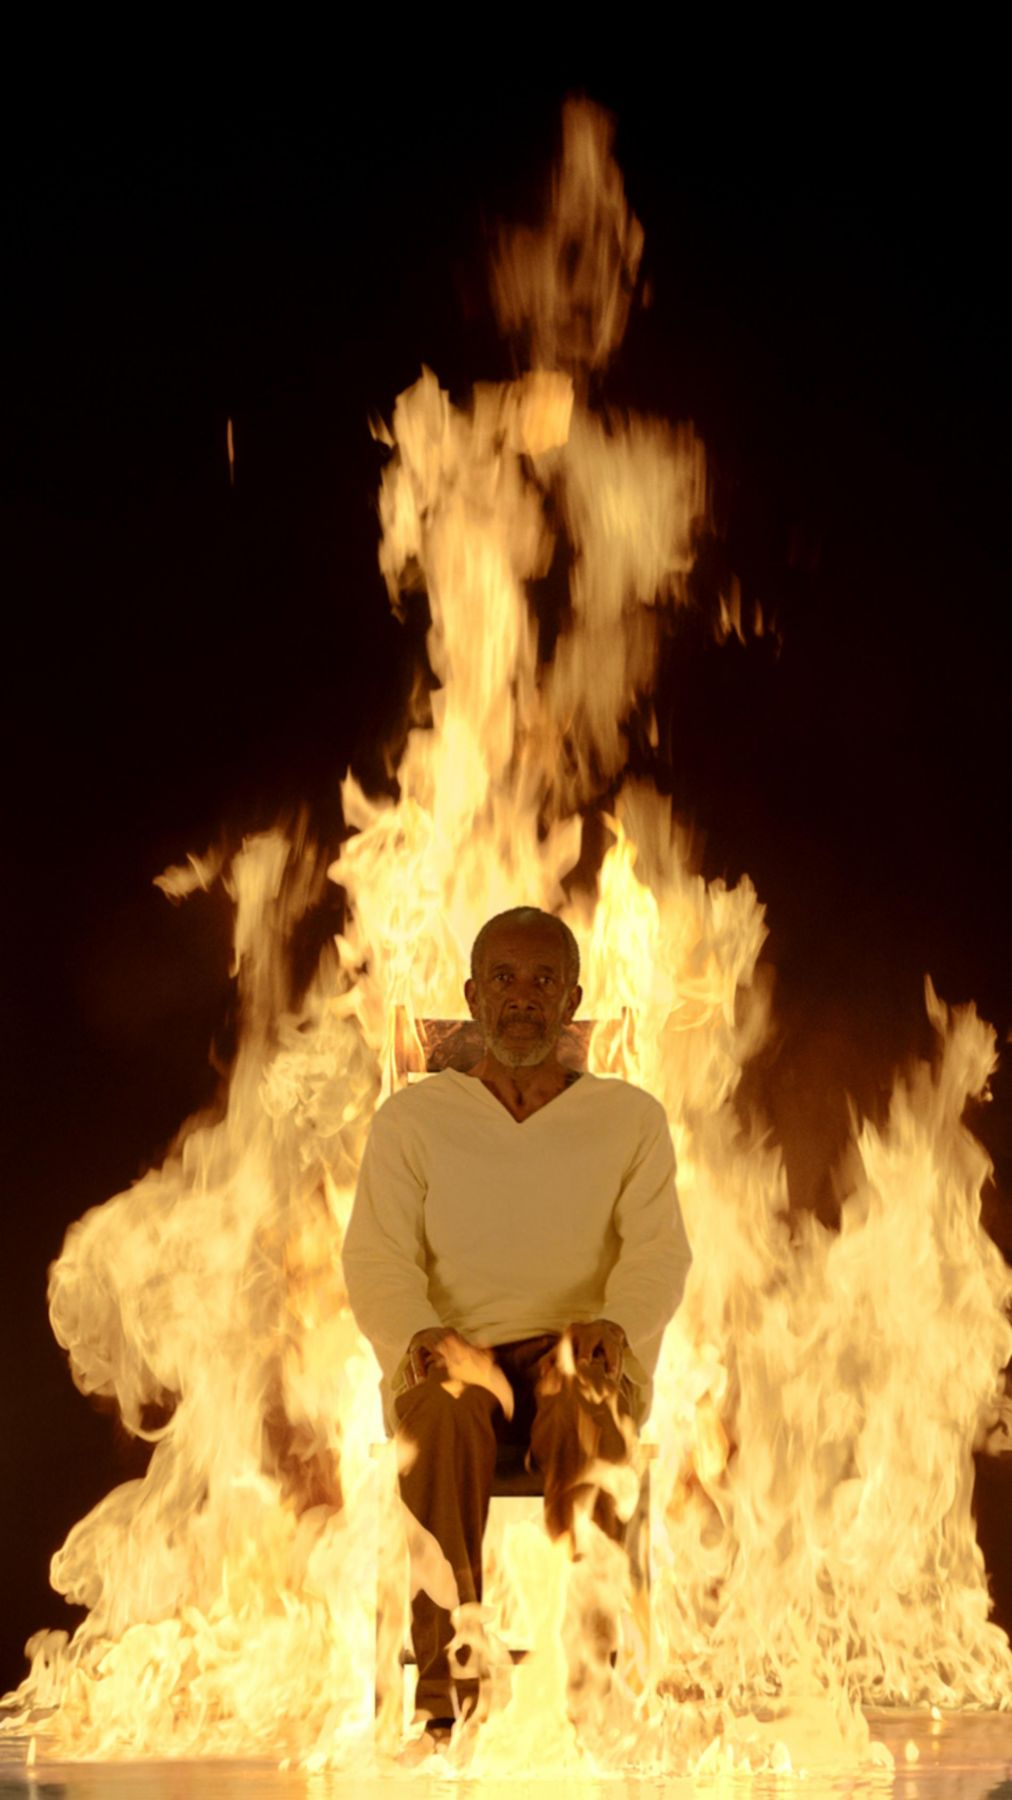 , BILL VIOLA Fire Martyr, 2014 Color High-Definition video on flat panel display, 42.4 x 24.5 x 2.7 in (107.6 x 62.1 x 6.8 cm) Duration: 7:10 minutes Edition of 5